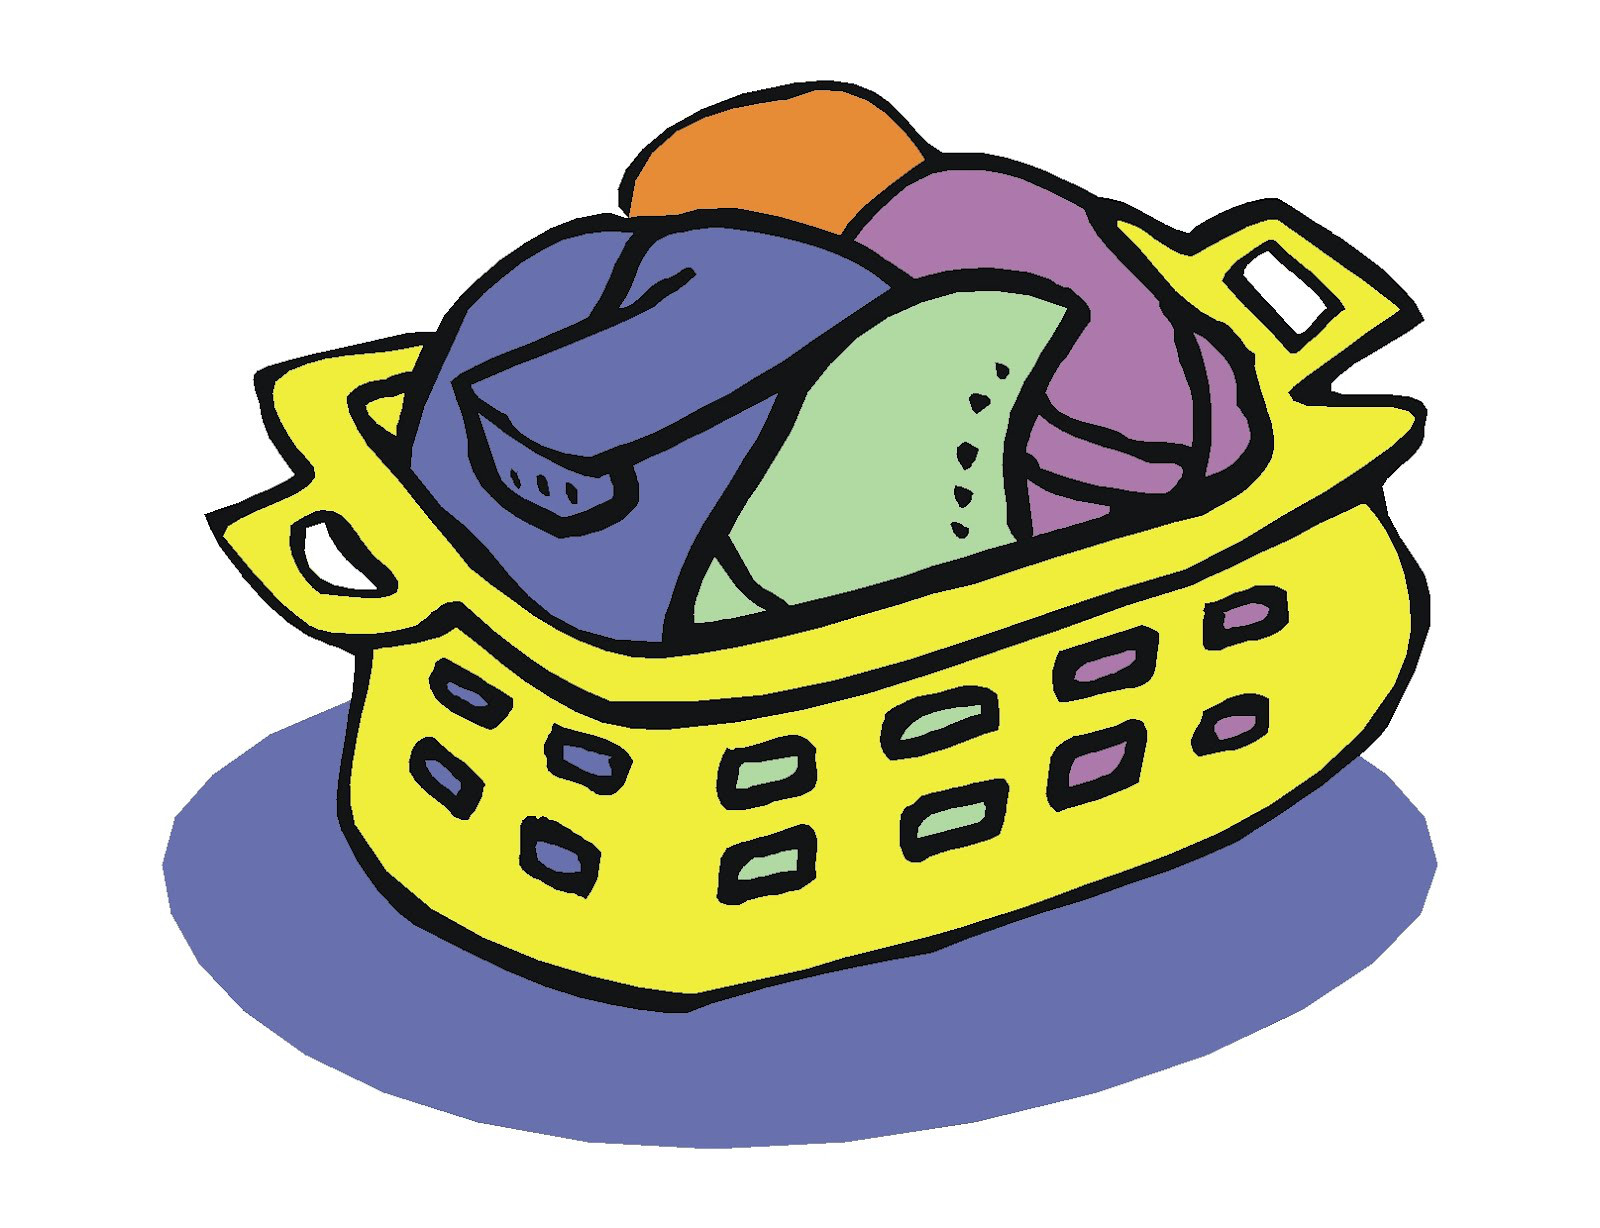 Tall basket clipart picture download Laundry Basket Clipart - Making-The-Web.com picture download